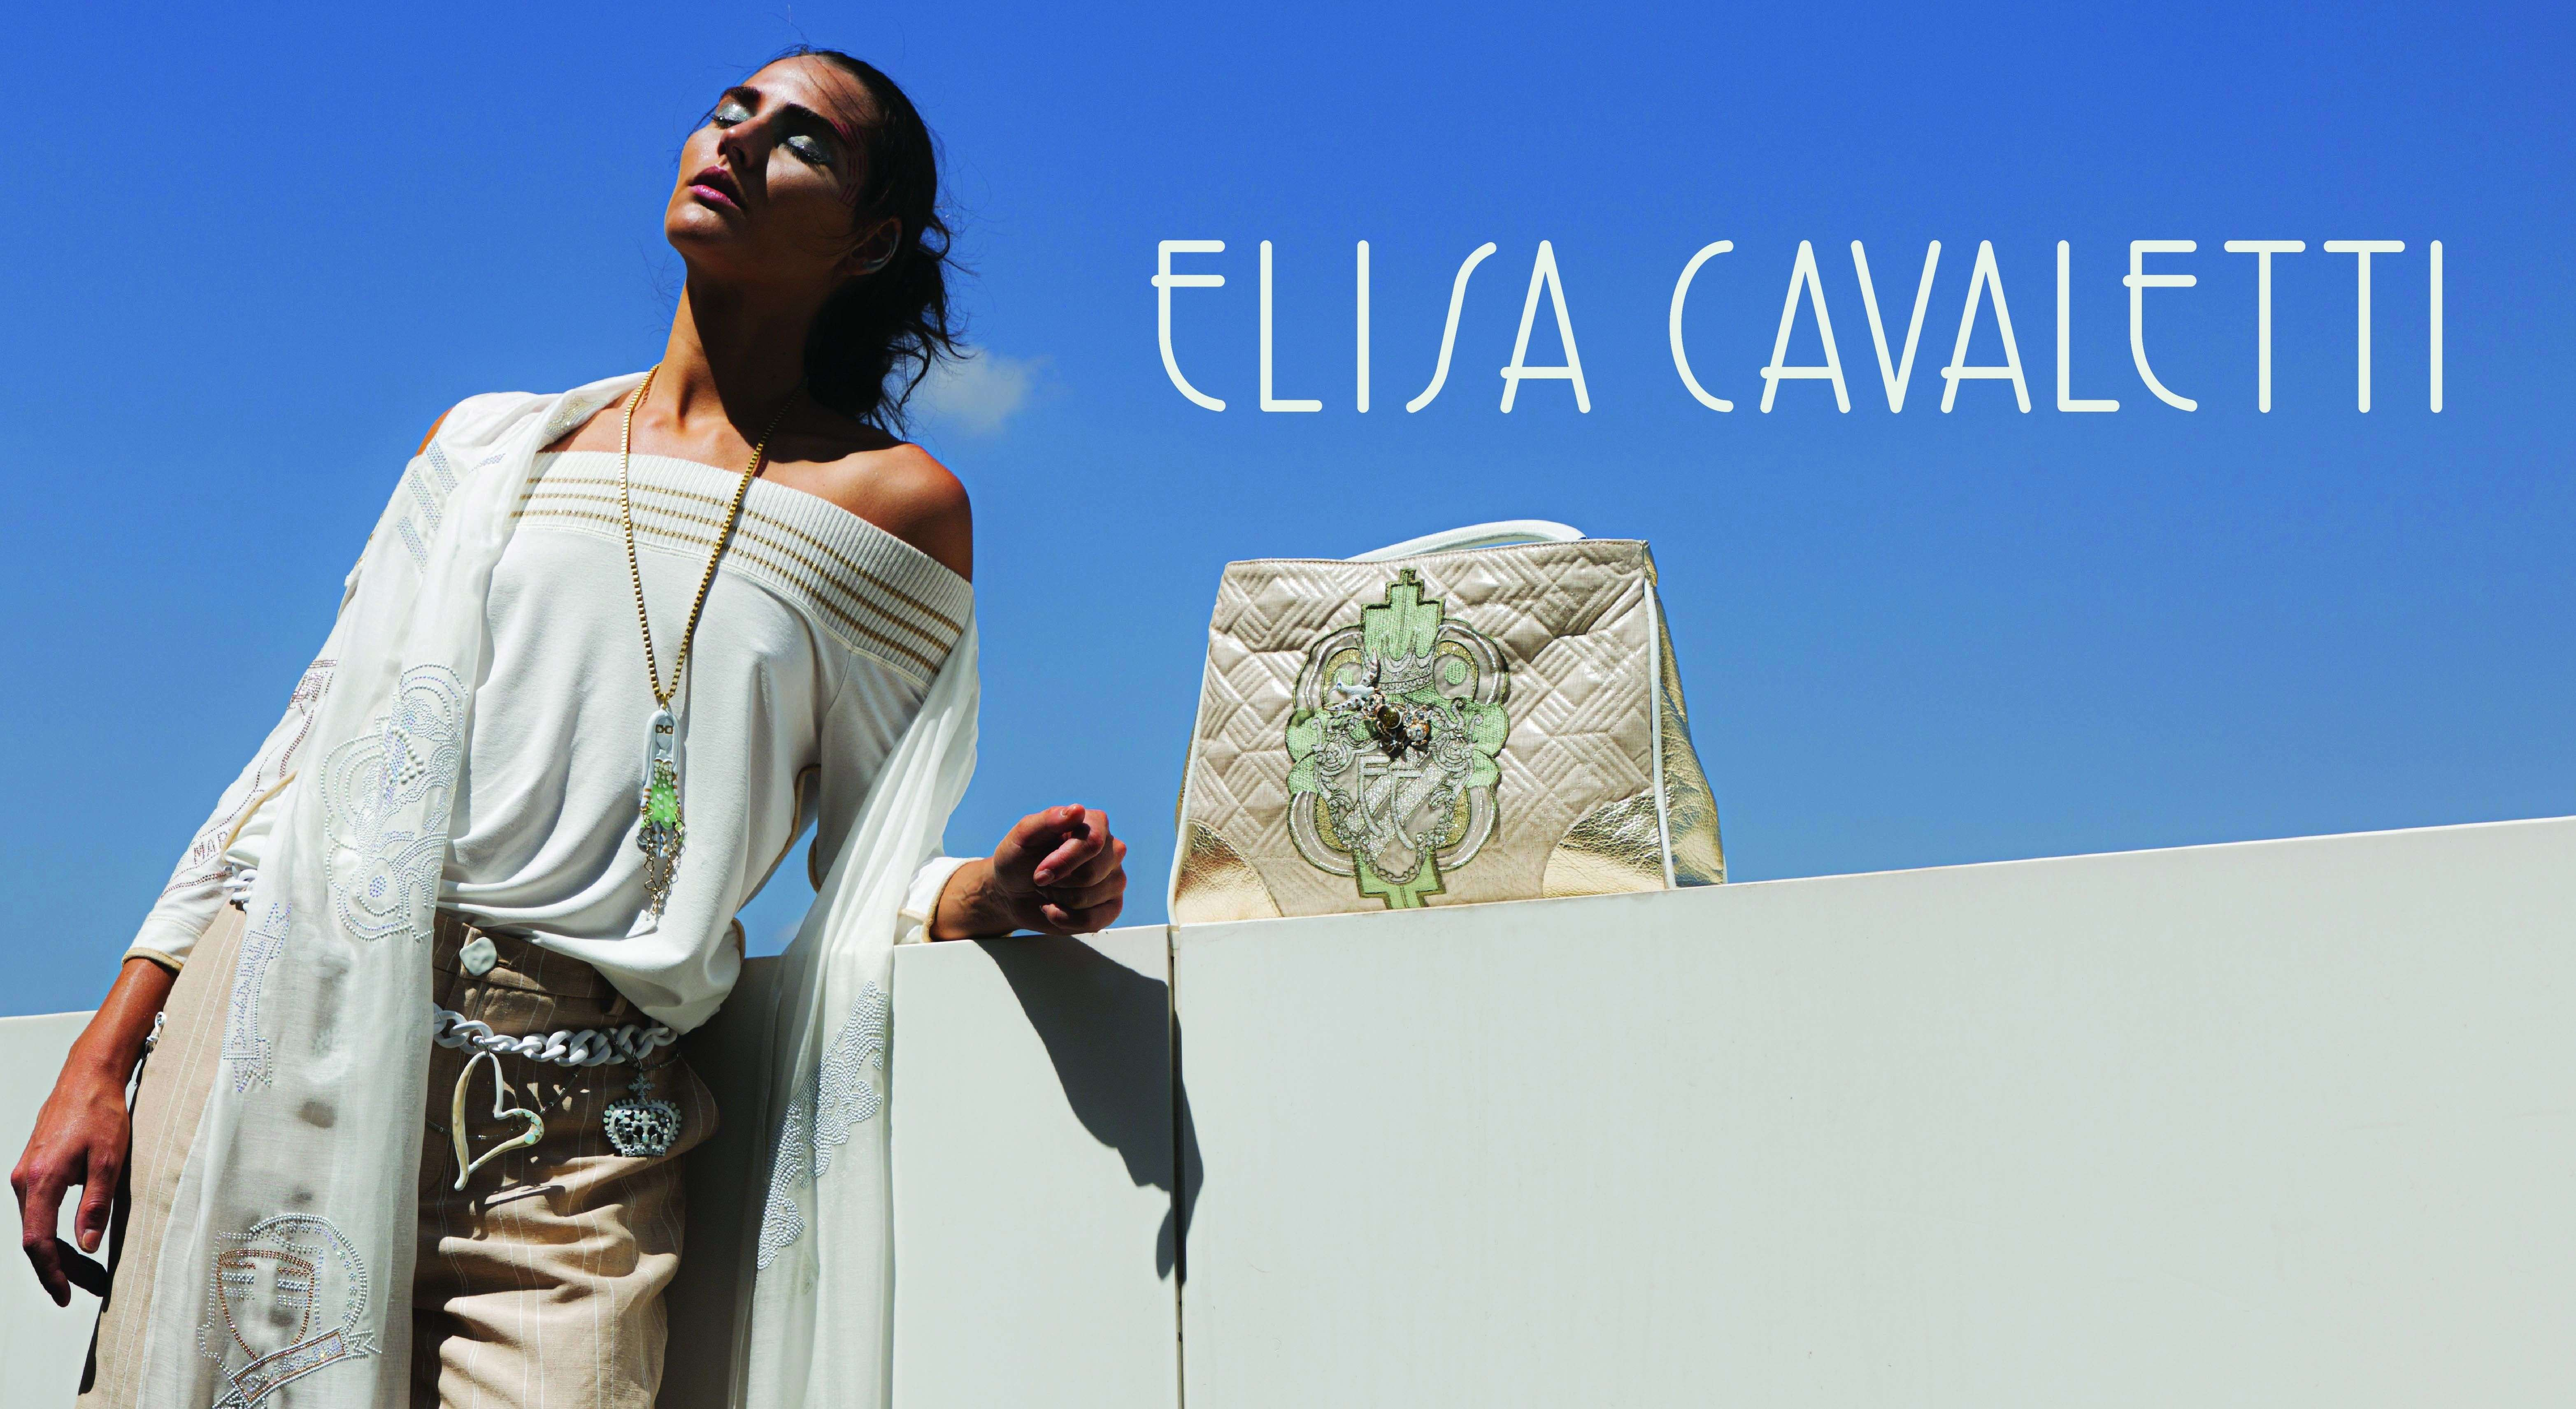 Nouvelle collection Elisa Cavaletti